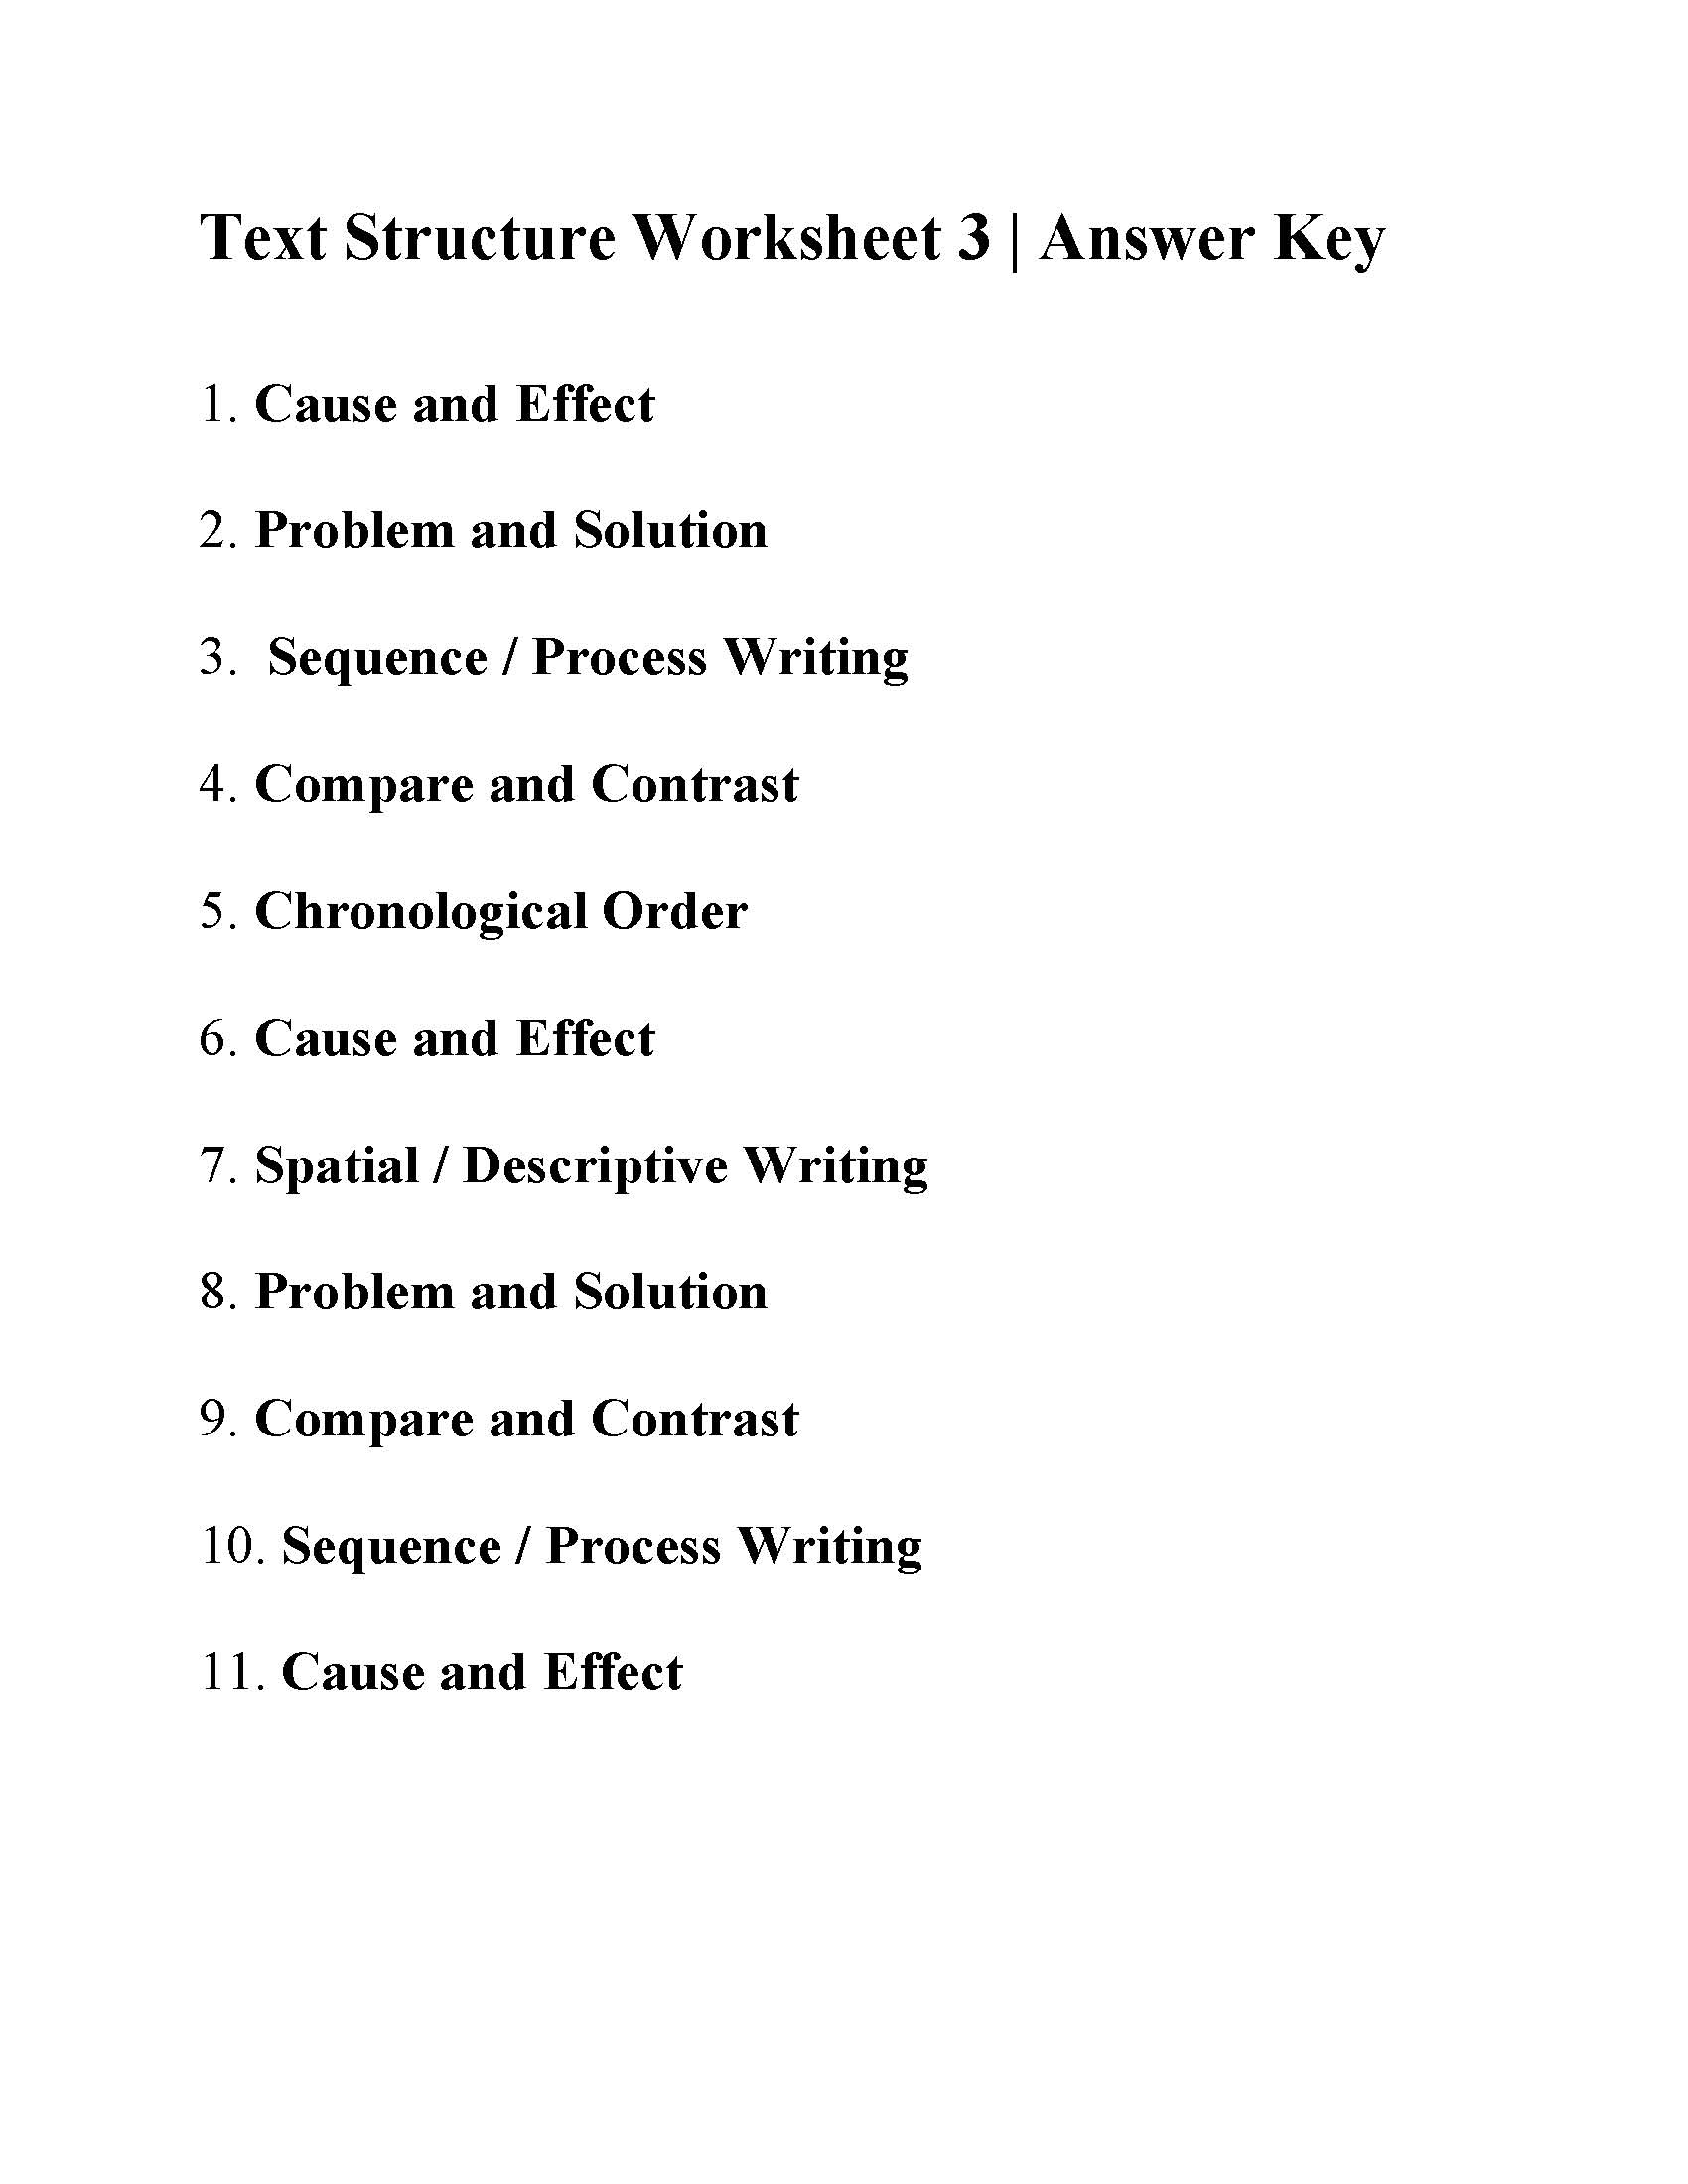 Text Structure Worksheet 3 Answers